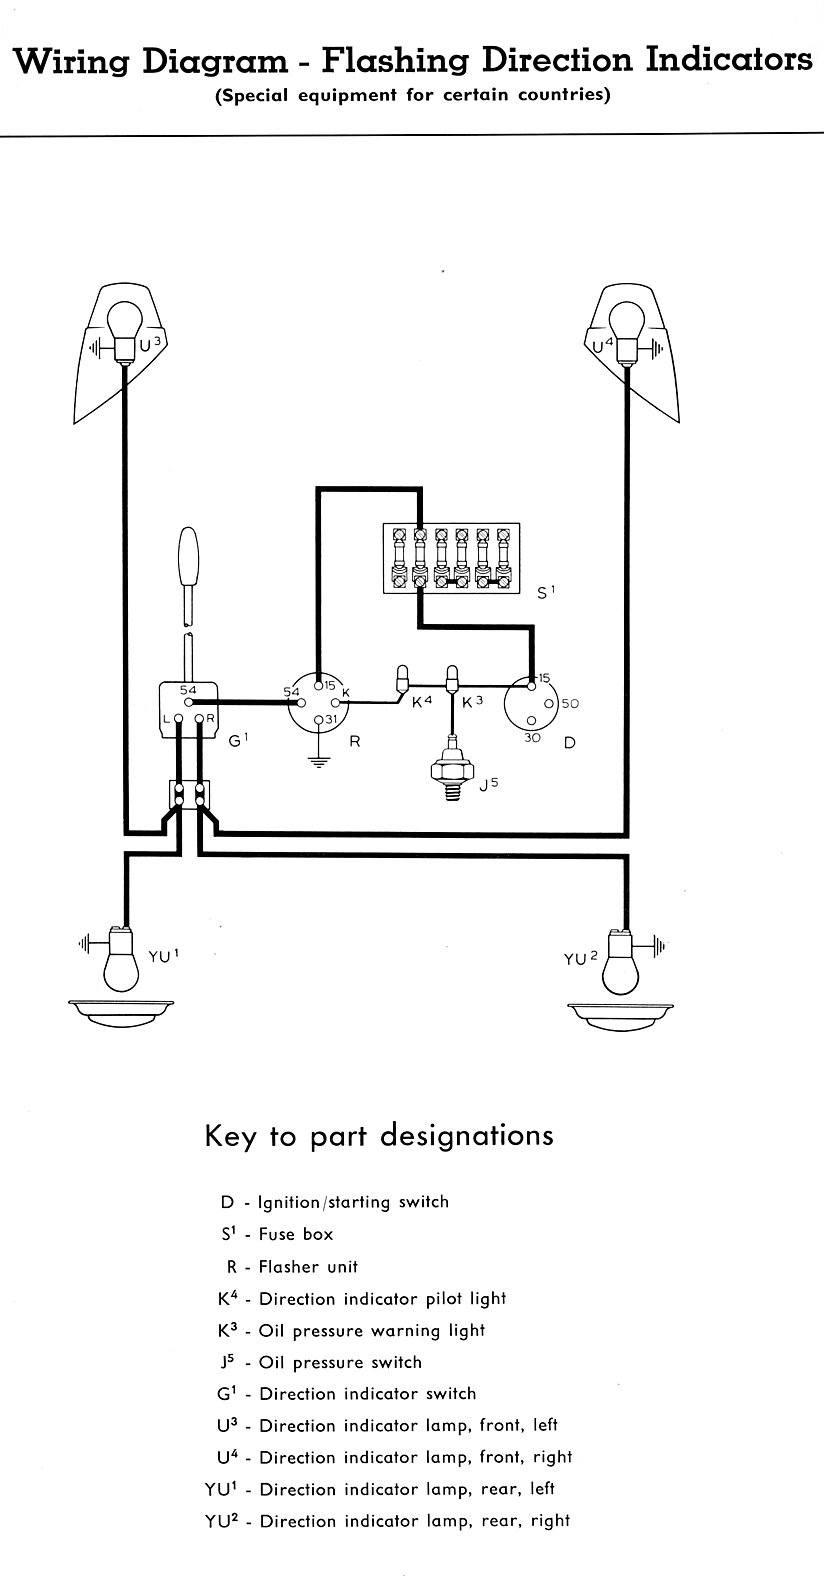 Relay Wiring Diagram Ignition Switch Turn Signal Http Wwwrosepickupscom 5wayswitchwiringdiagramjpg Thesamba Com Type 2 Diagrams Rh